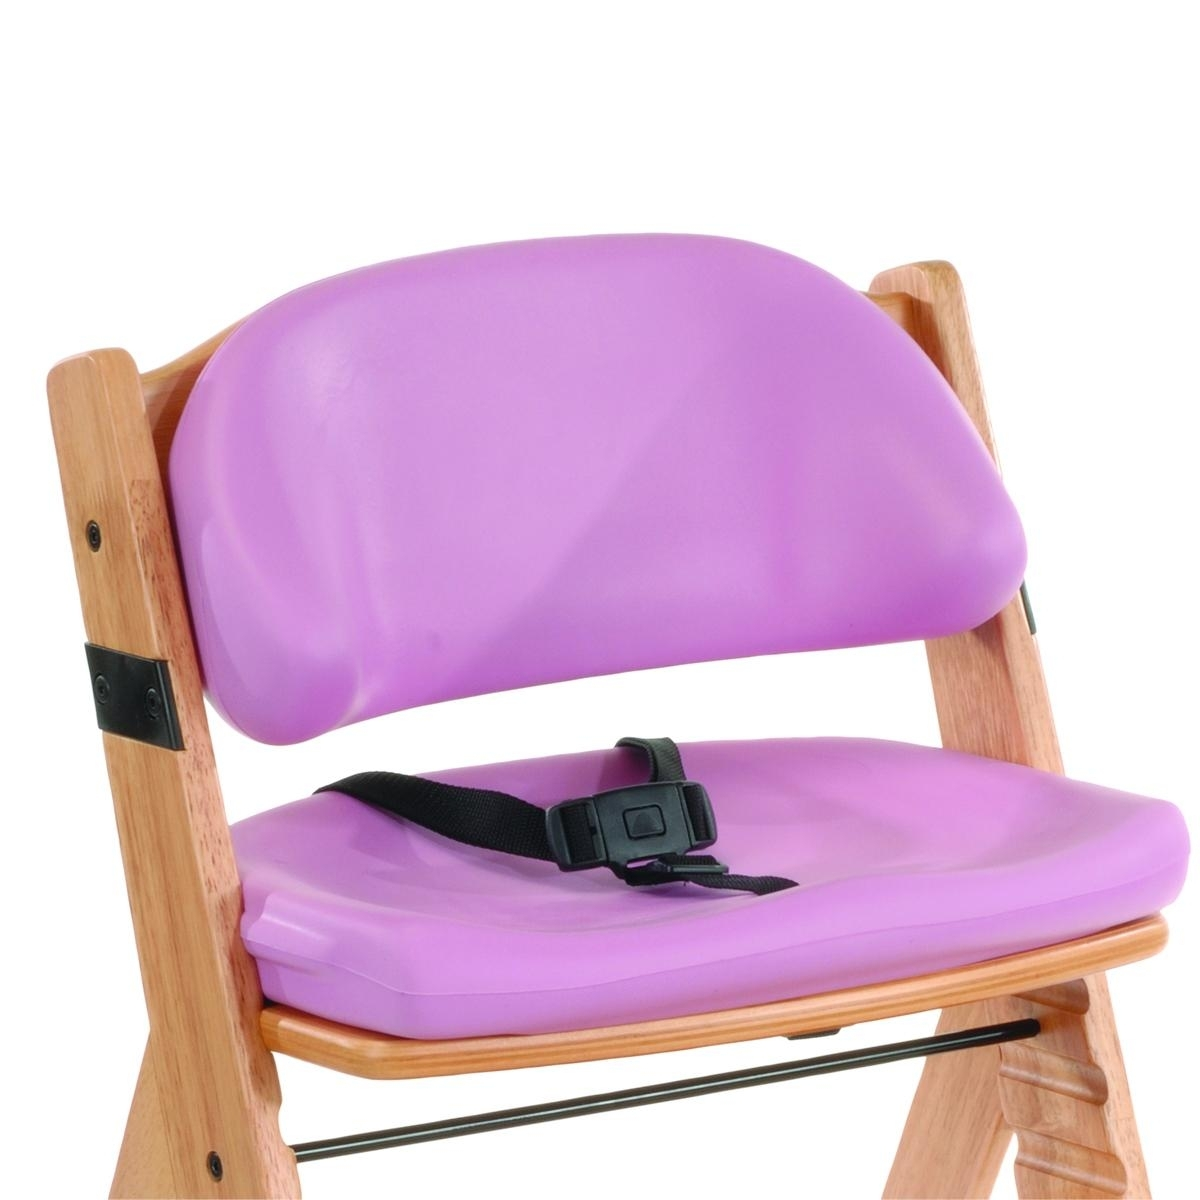 Special Tomato Soft-touch Booster Seat; Lilac - 30-3450llc - Special Populations Mobility Crawlers And Scooters 30-3450LLC